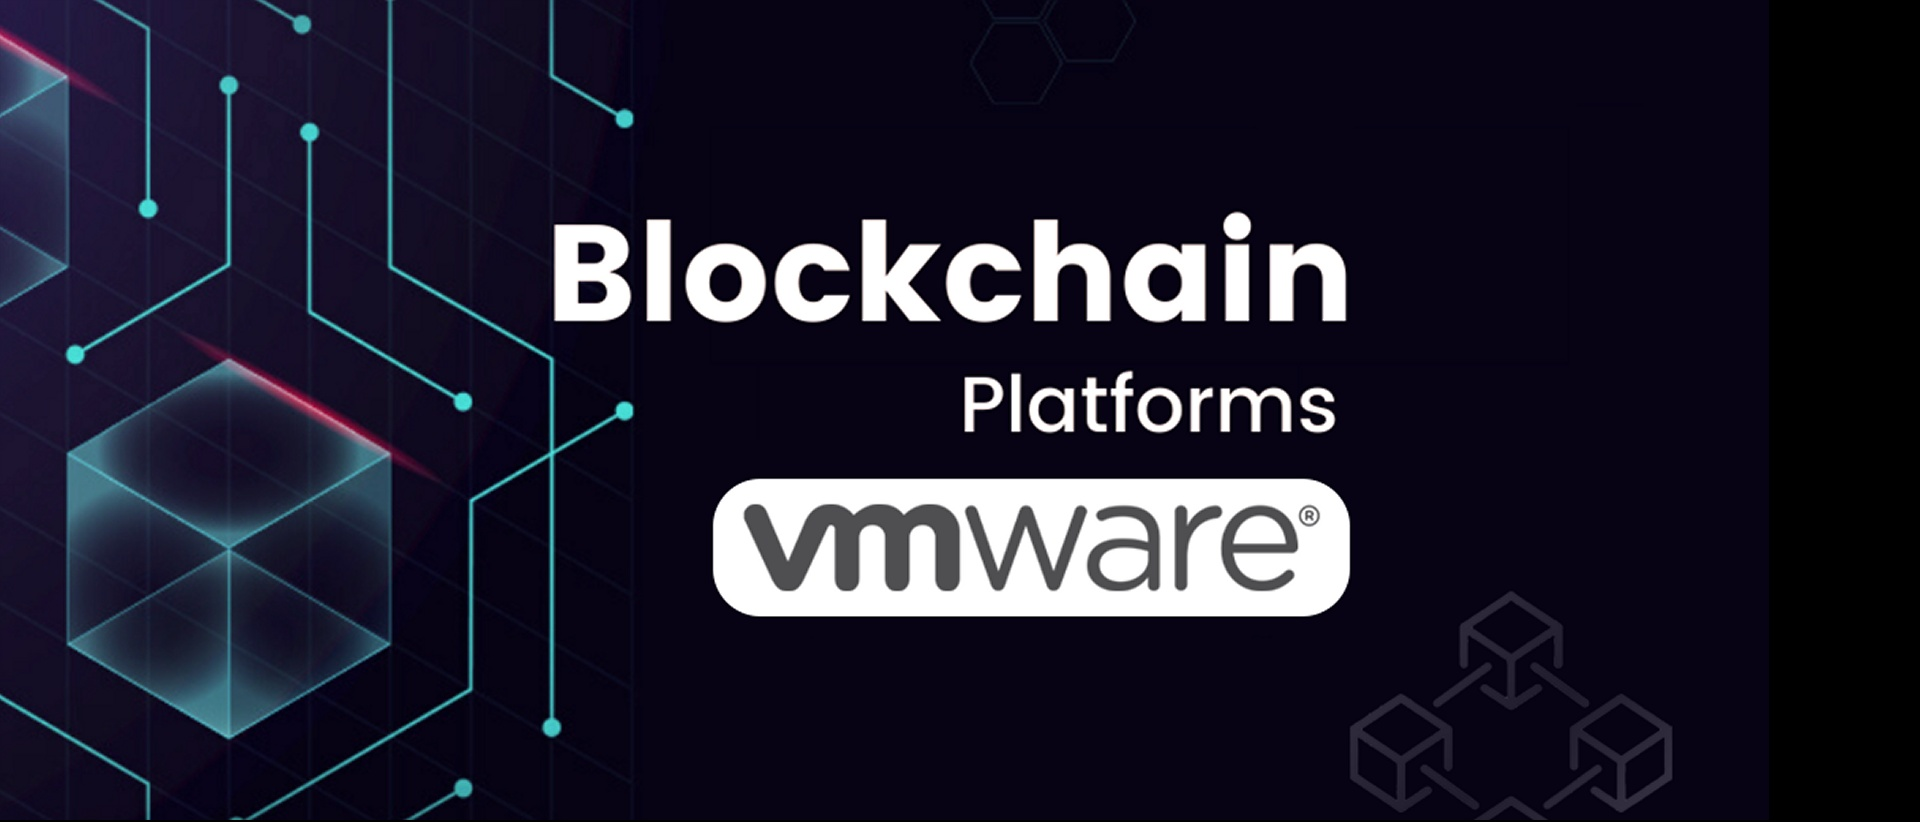 VMware-Blockchain-Plattform-geht-an-den-Start